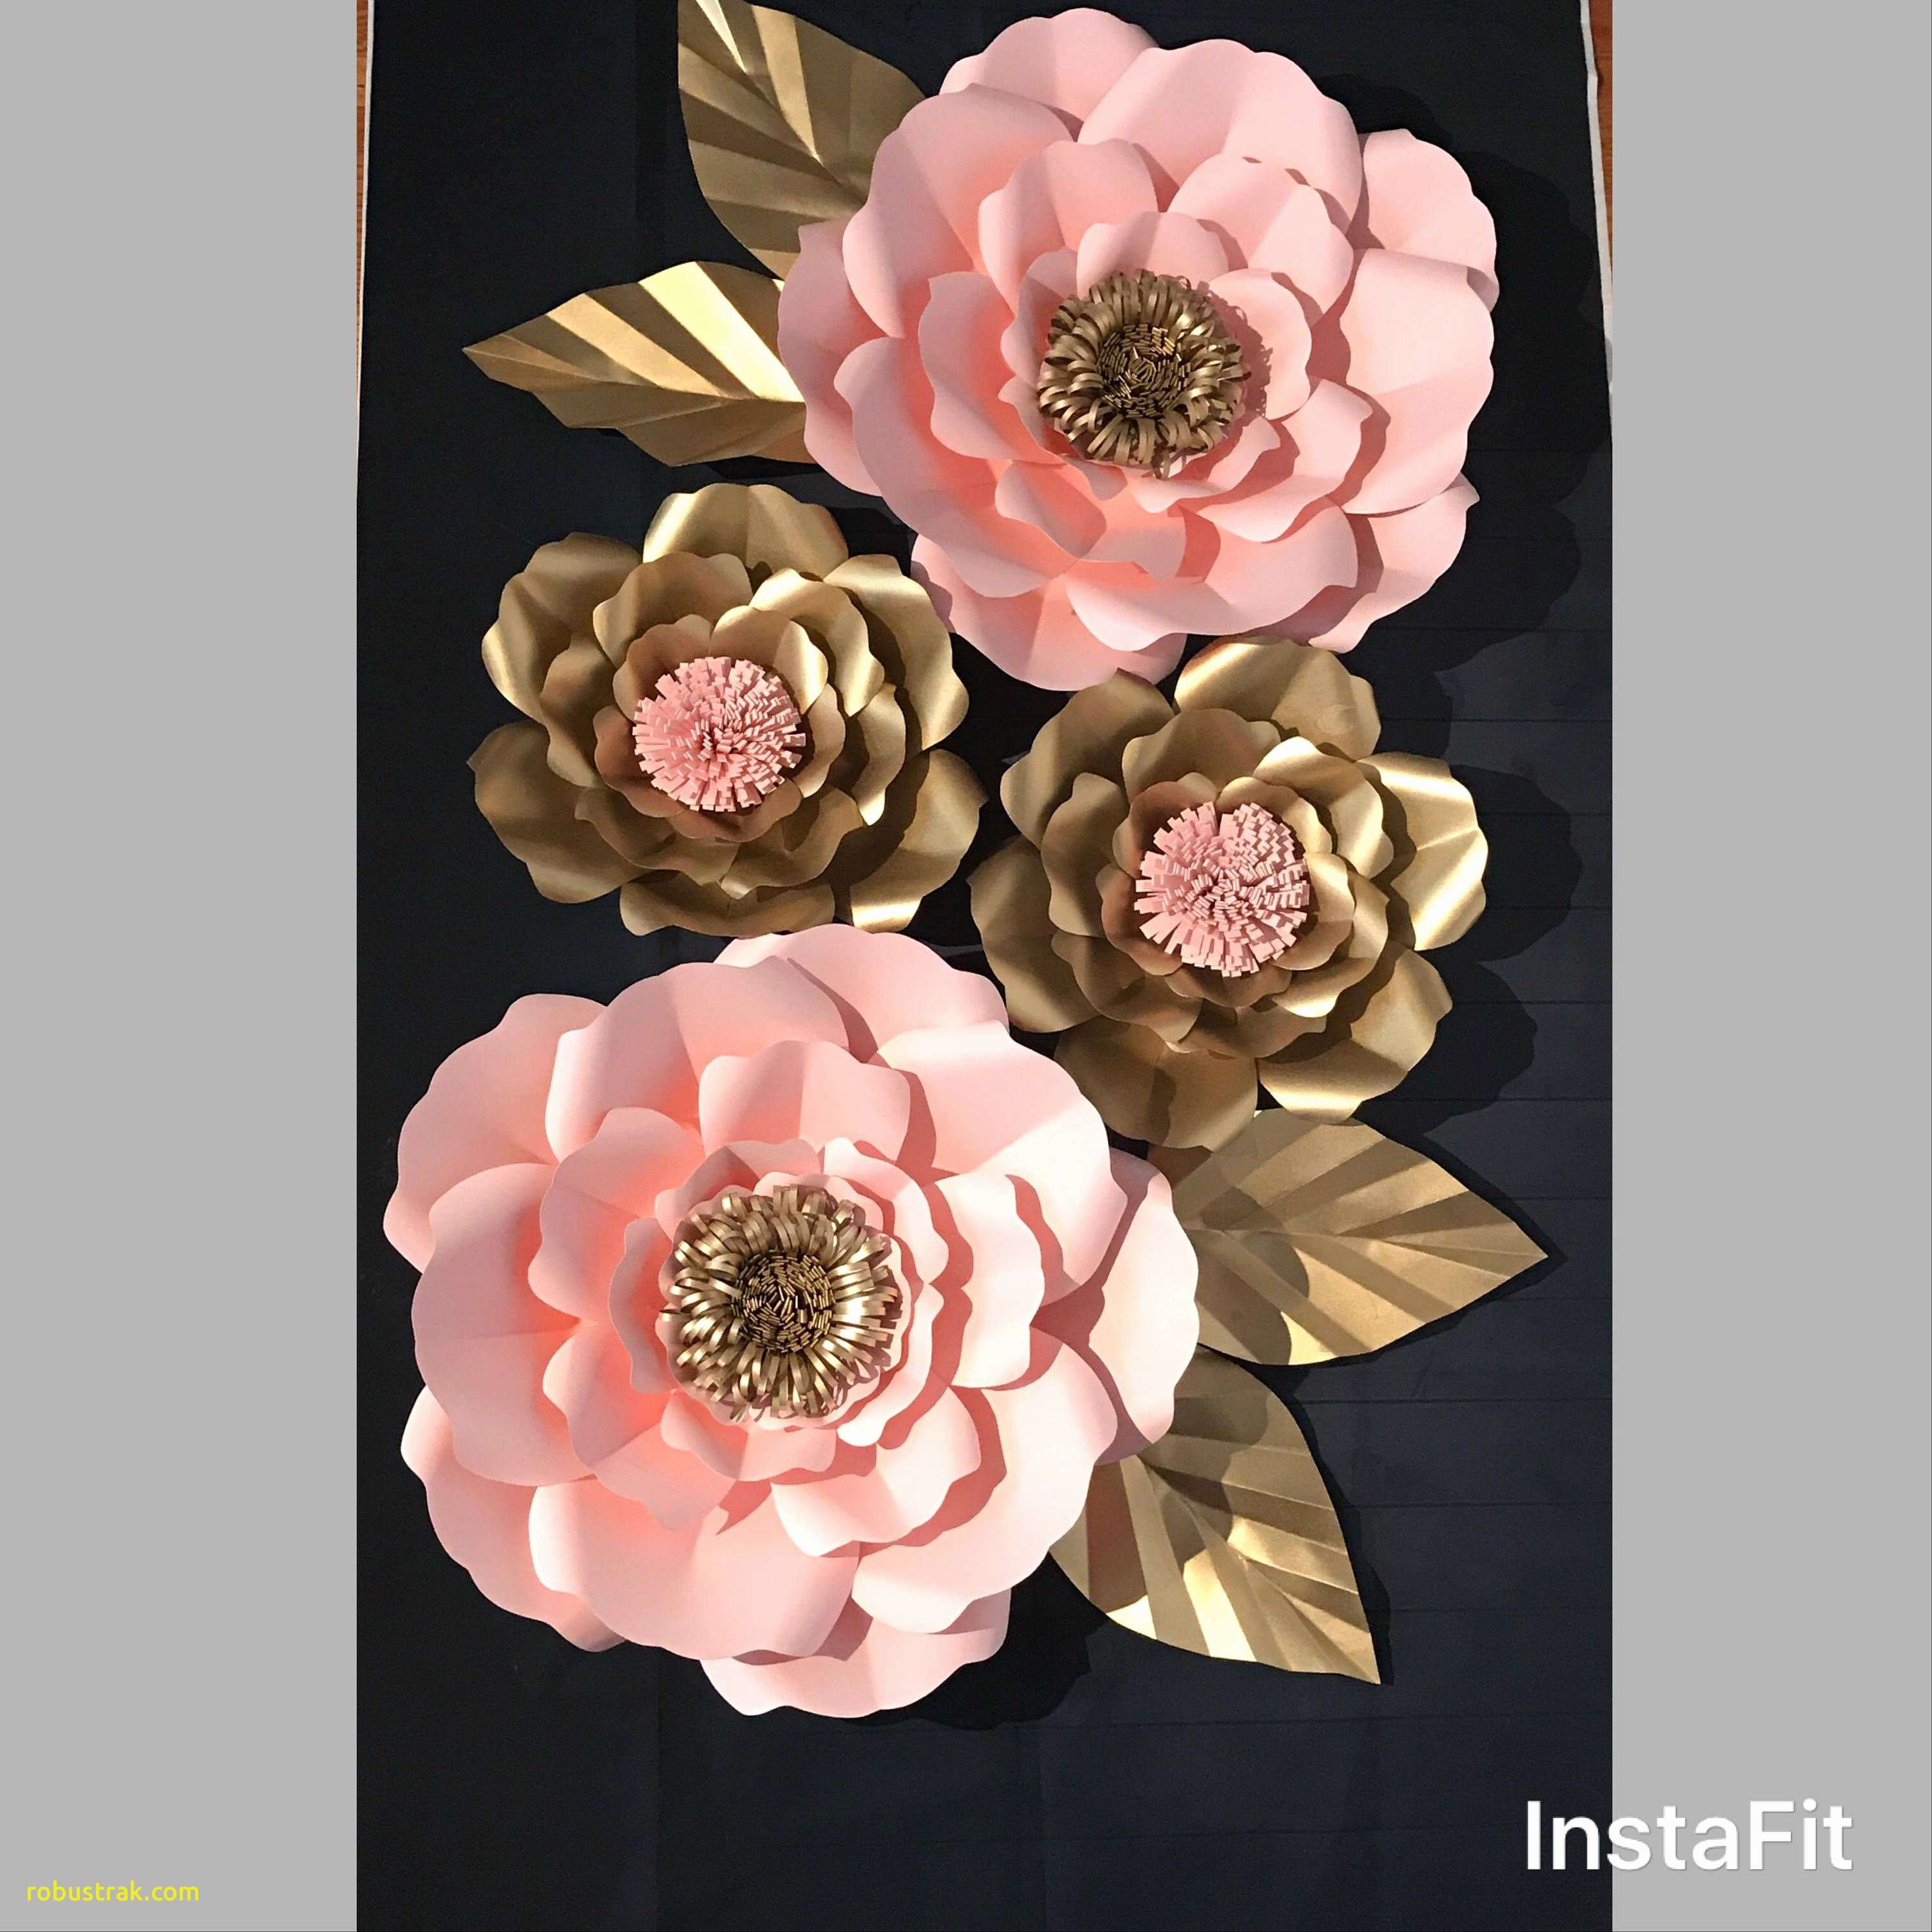 wall bud vase of beautiful christmas floral decorations ideas home design ideas in floral decor for home beautiful decor floral decor floral decor 0d design christmas floral arrangements